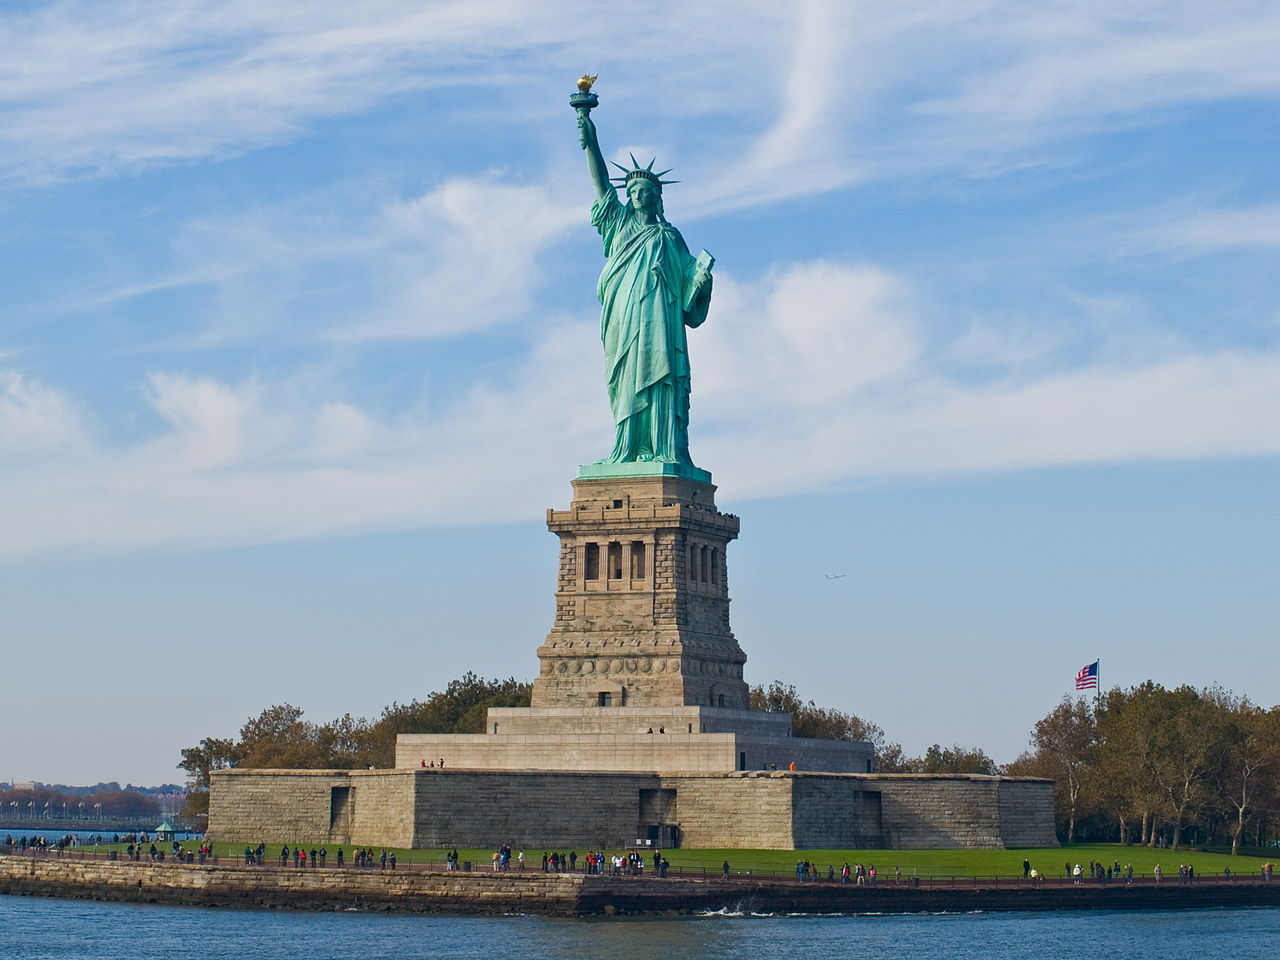 Statue of Liberty. Photo by William Warby (originally posted to Flickr as Statue of Liberty) [CC BY 2.0 (http://creativecommons.org/licenses/by/2.0)], via Wikimedia Commons